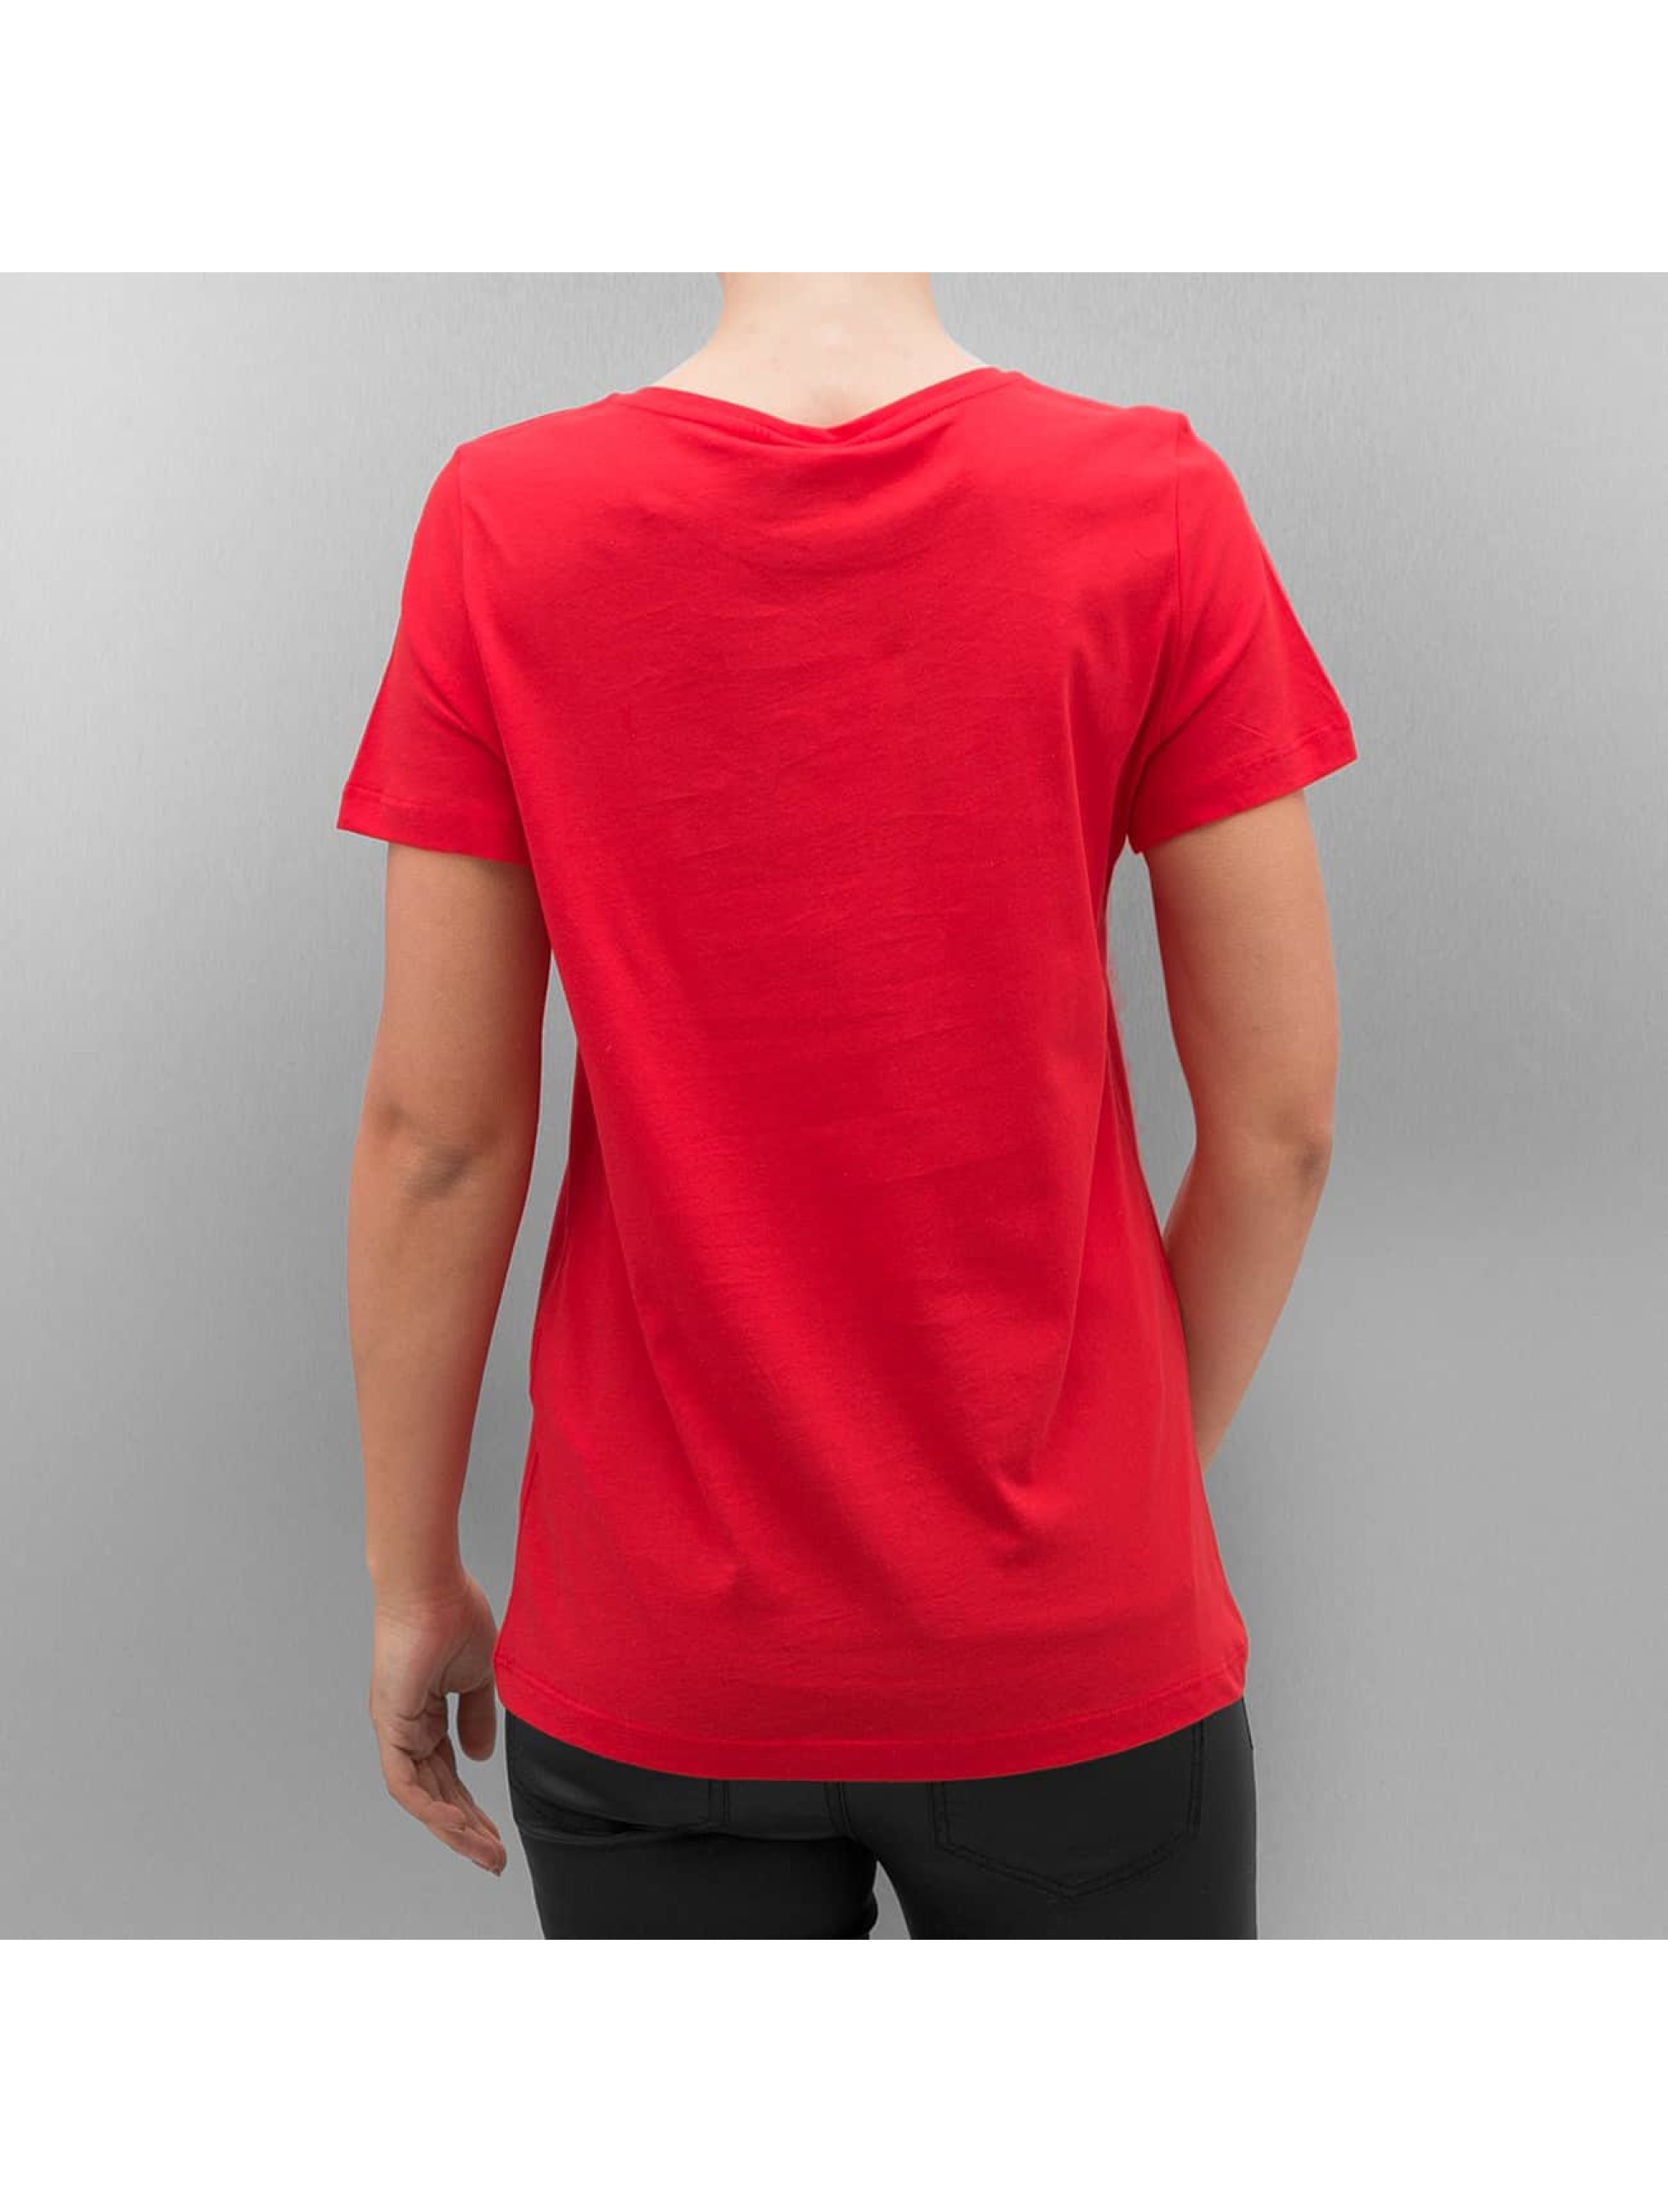 Vero Moda T-Shirt VmMy Christmas red